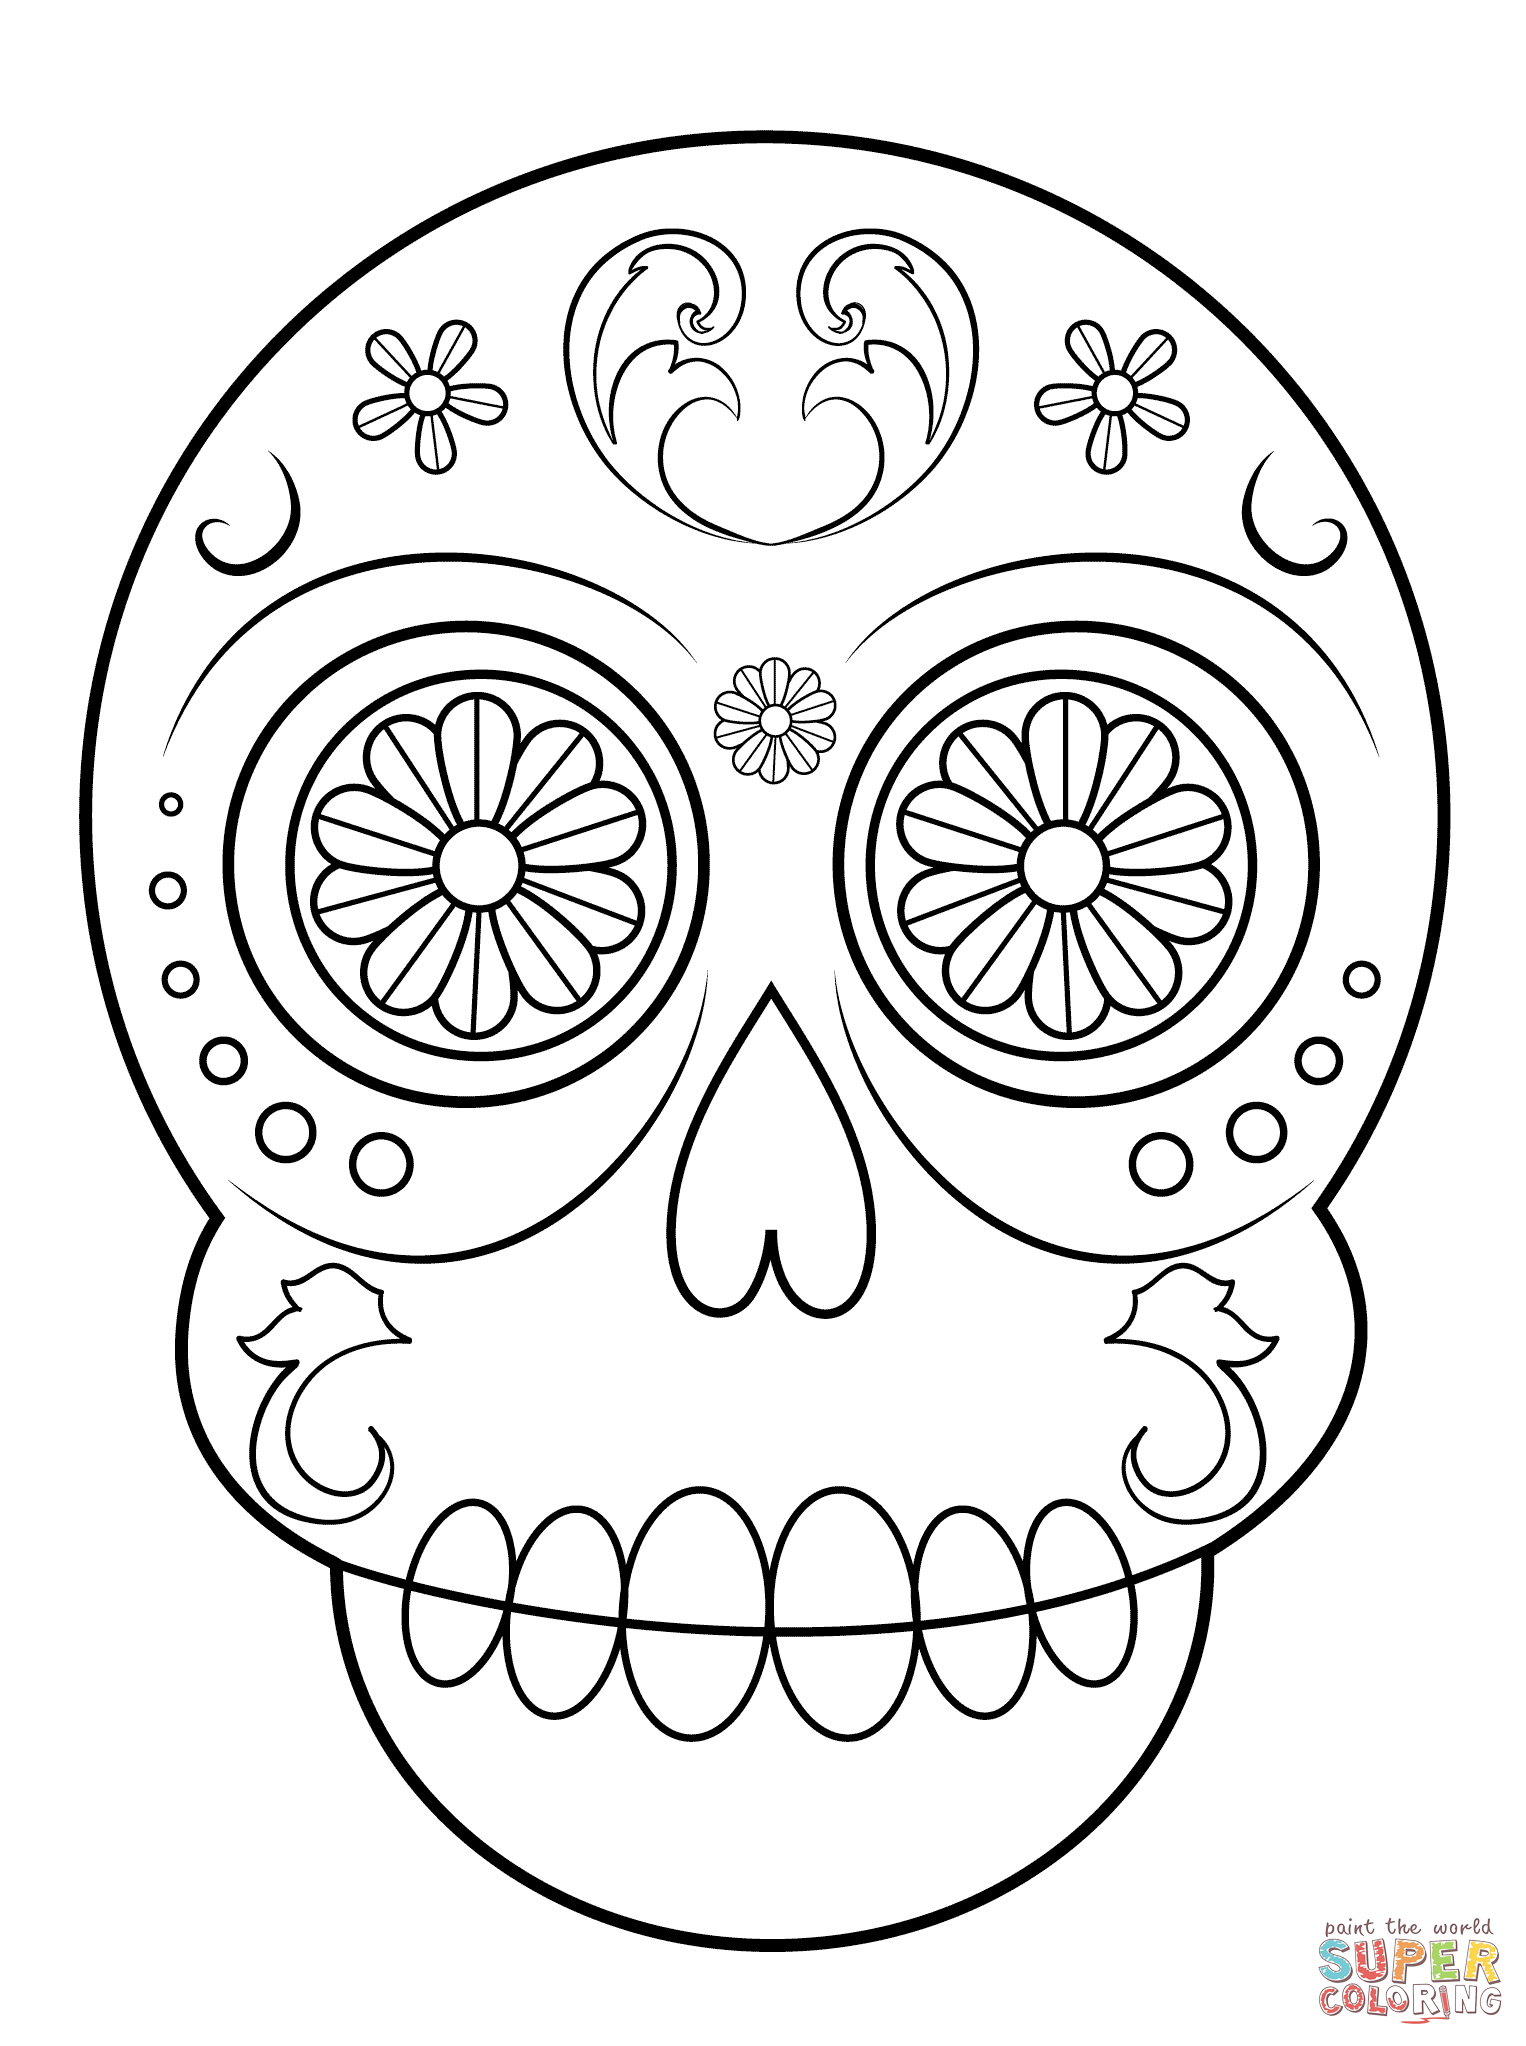 Day Of The Dead Sugar Skull Coloring Page | Free Printable Coloring - Free Printable Sugar Skull Day Of The Dead Mask